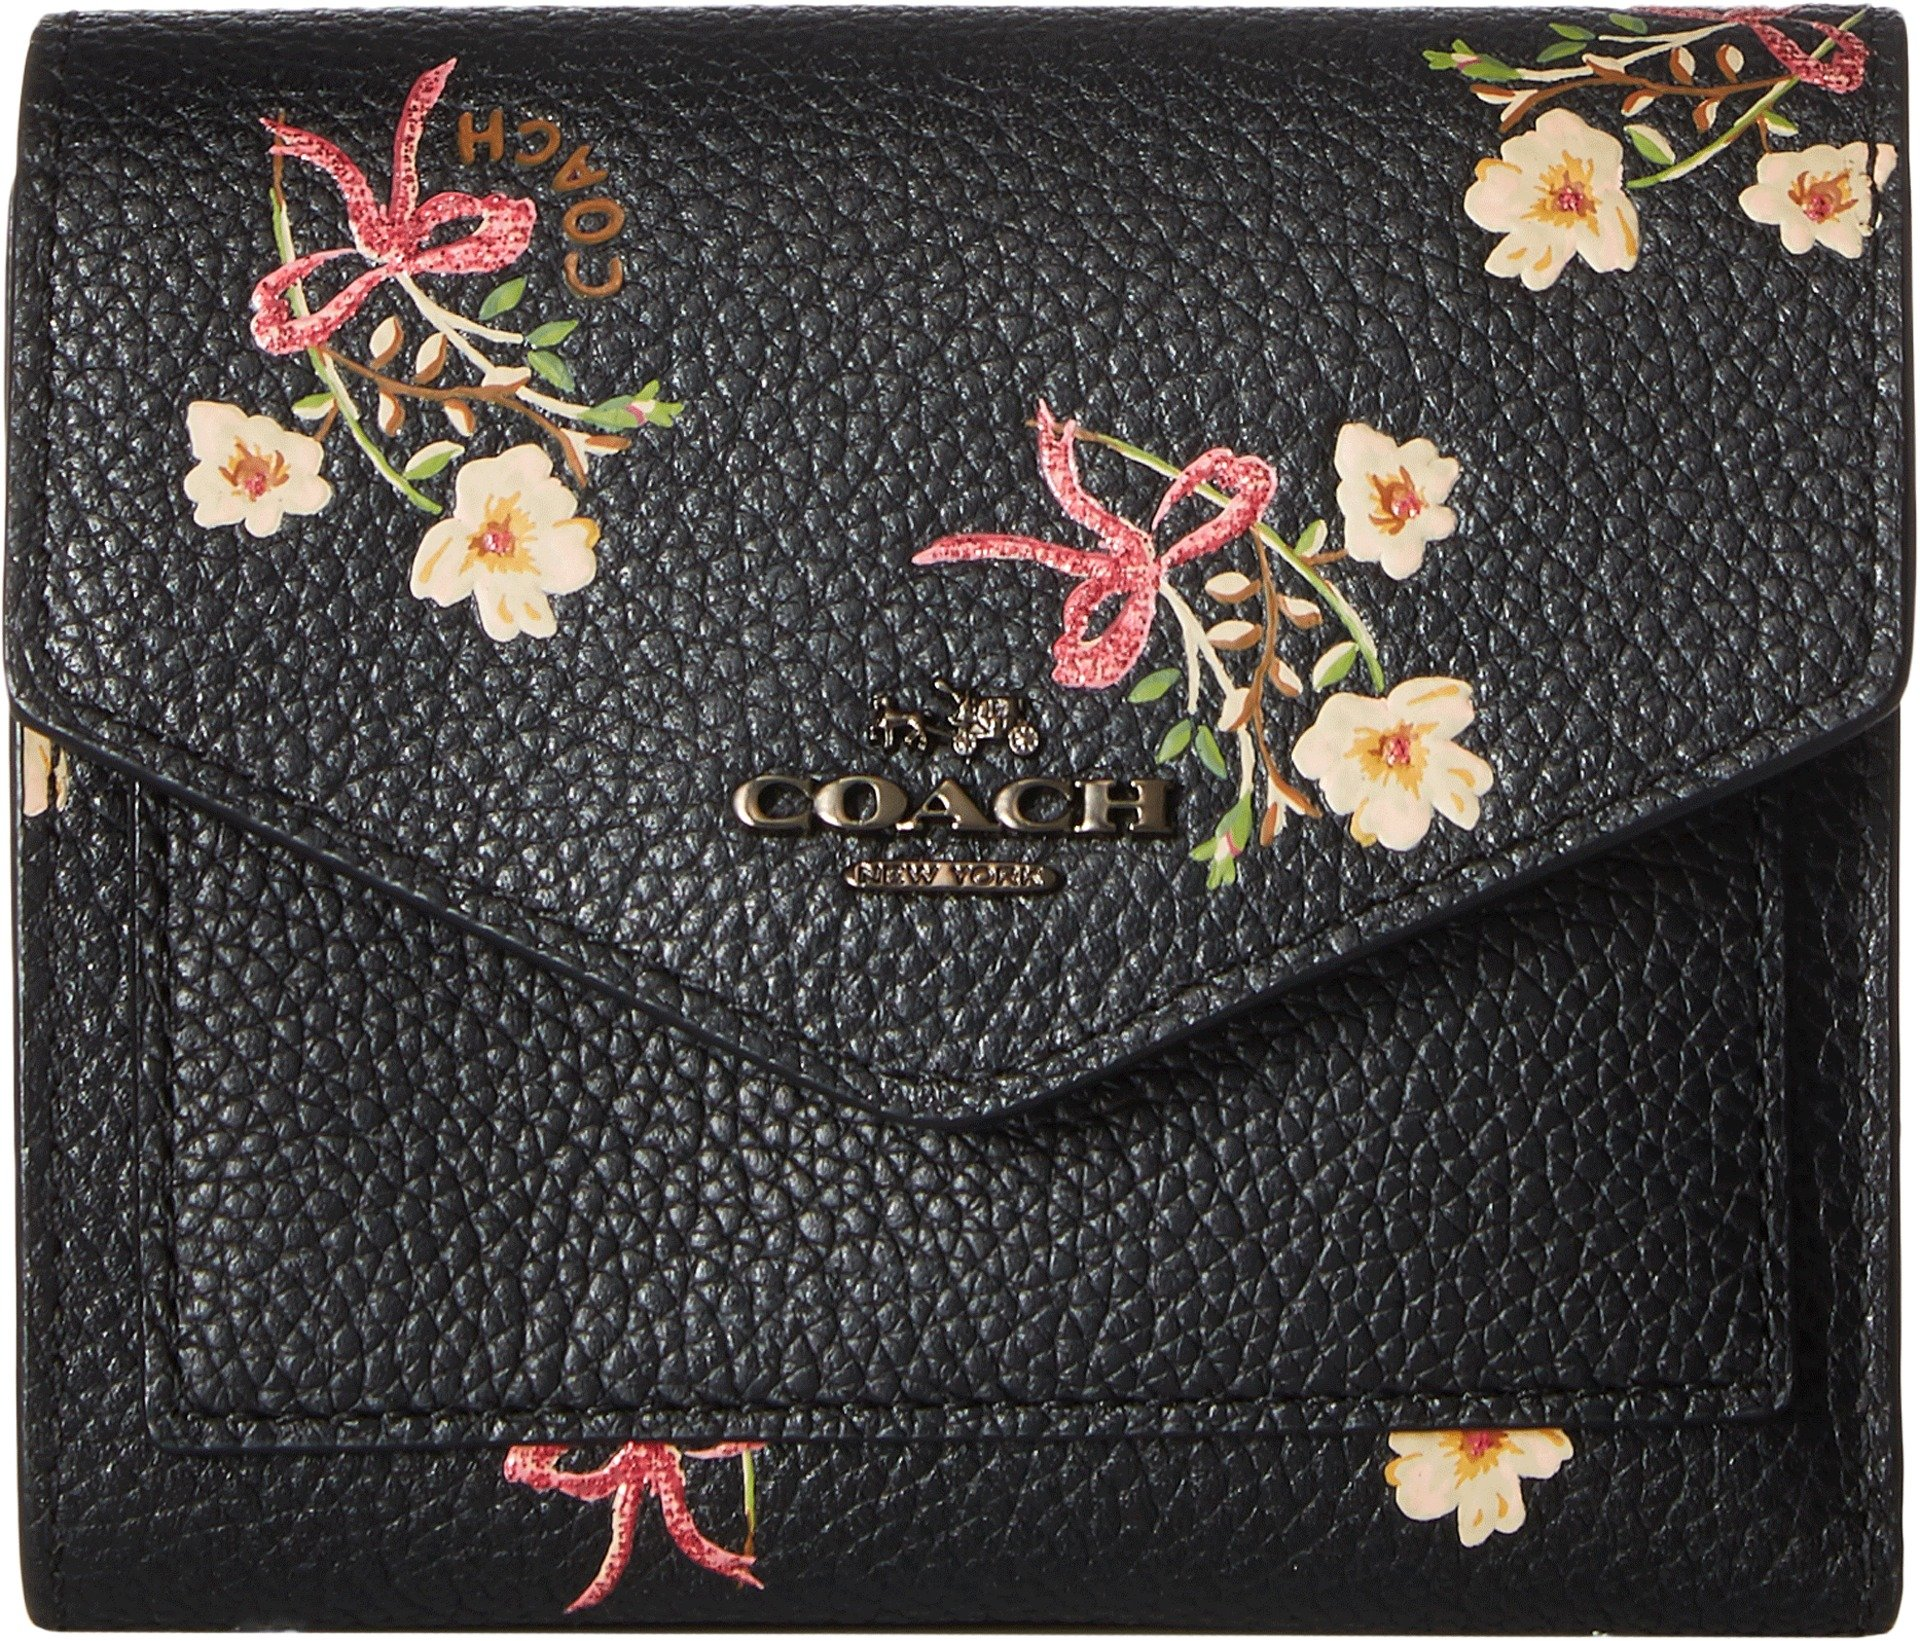 COACH Women's Small Wallet With Floral Bow Print Bp/Black One Size by Coach